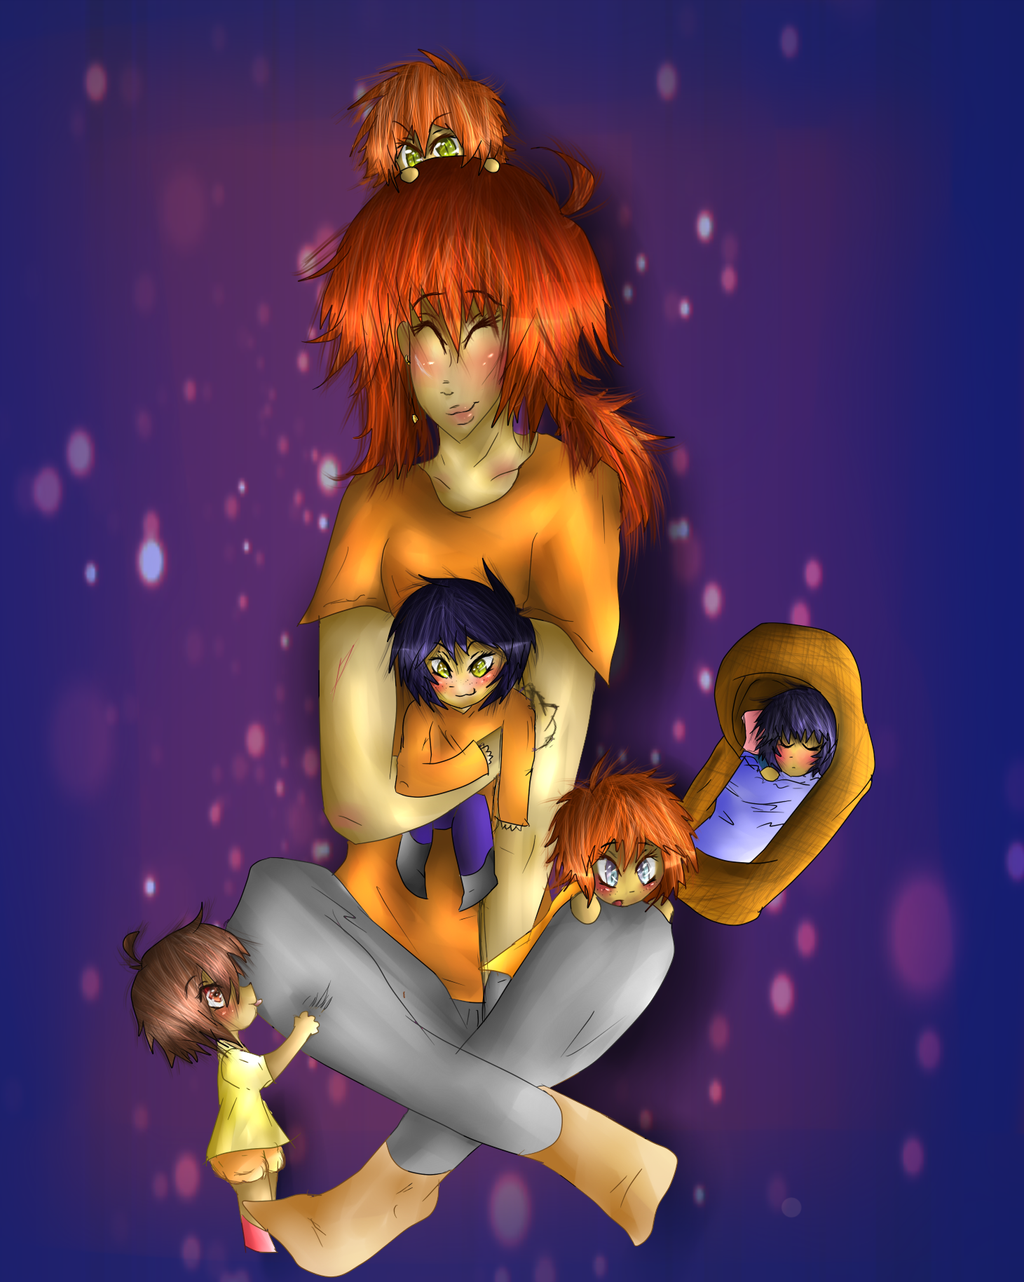 .: A Lady and her Babs :. by shotabunnyfairy